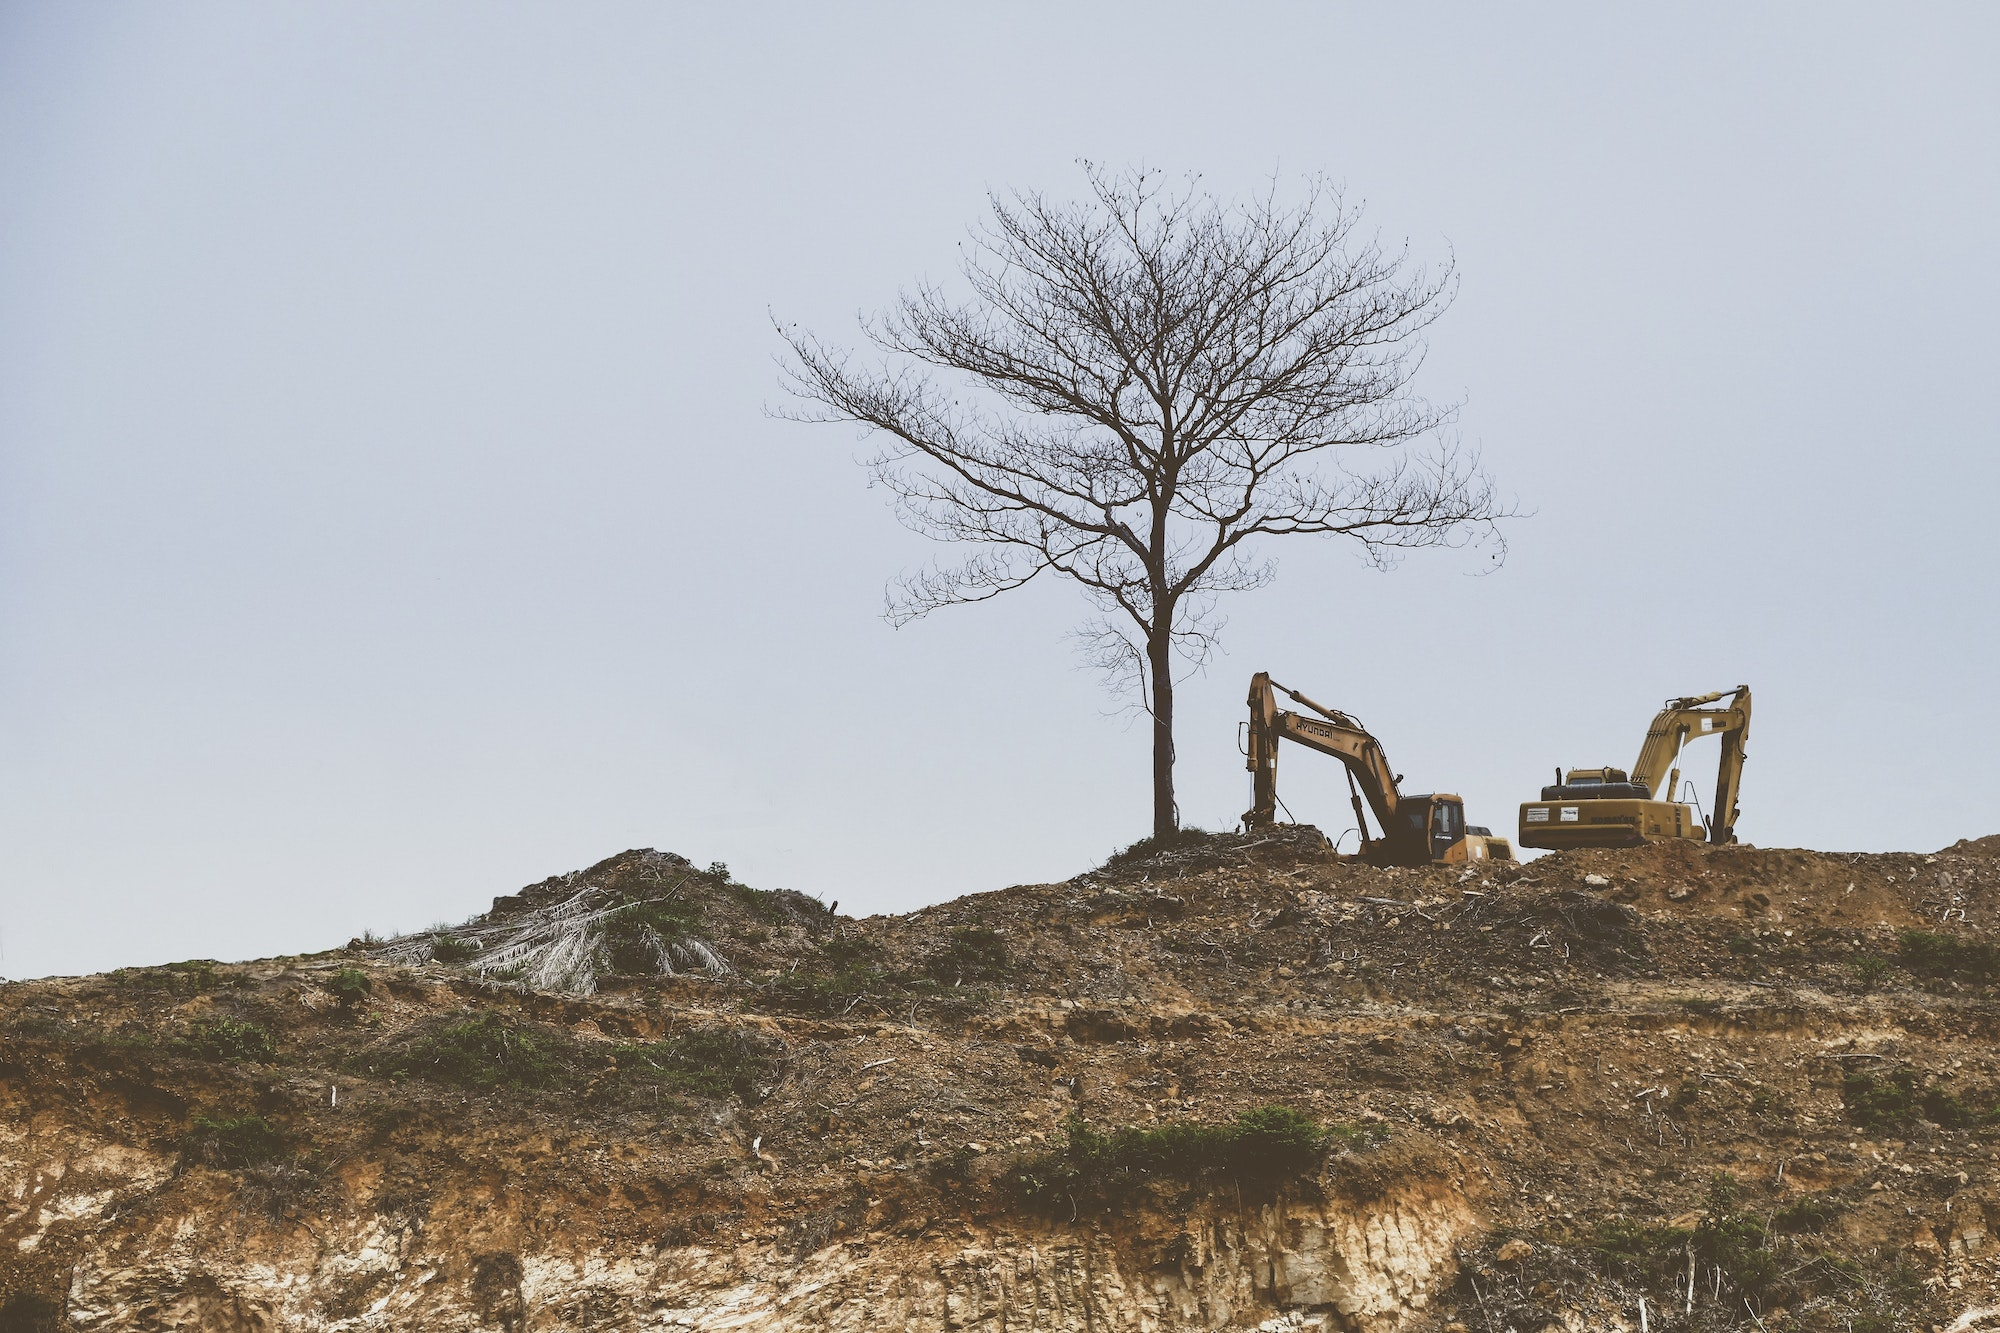 picture of a backhoe & tree on hill